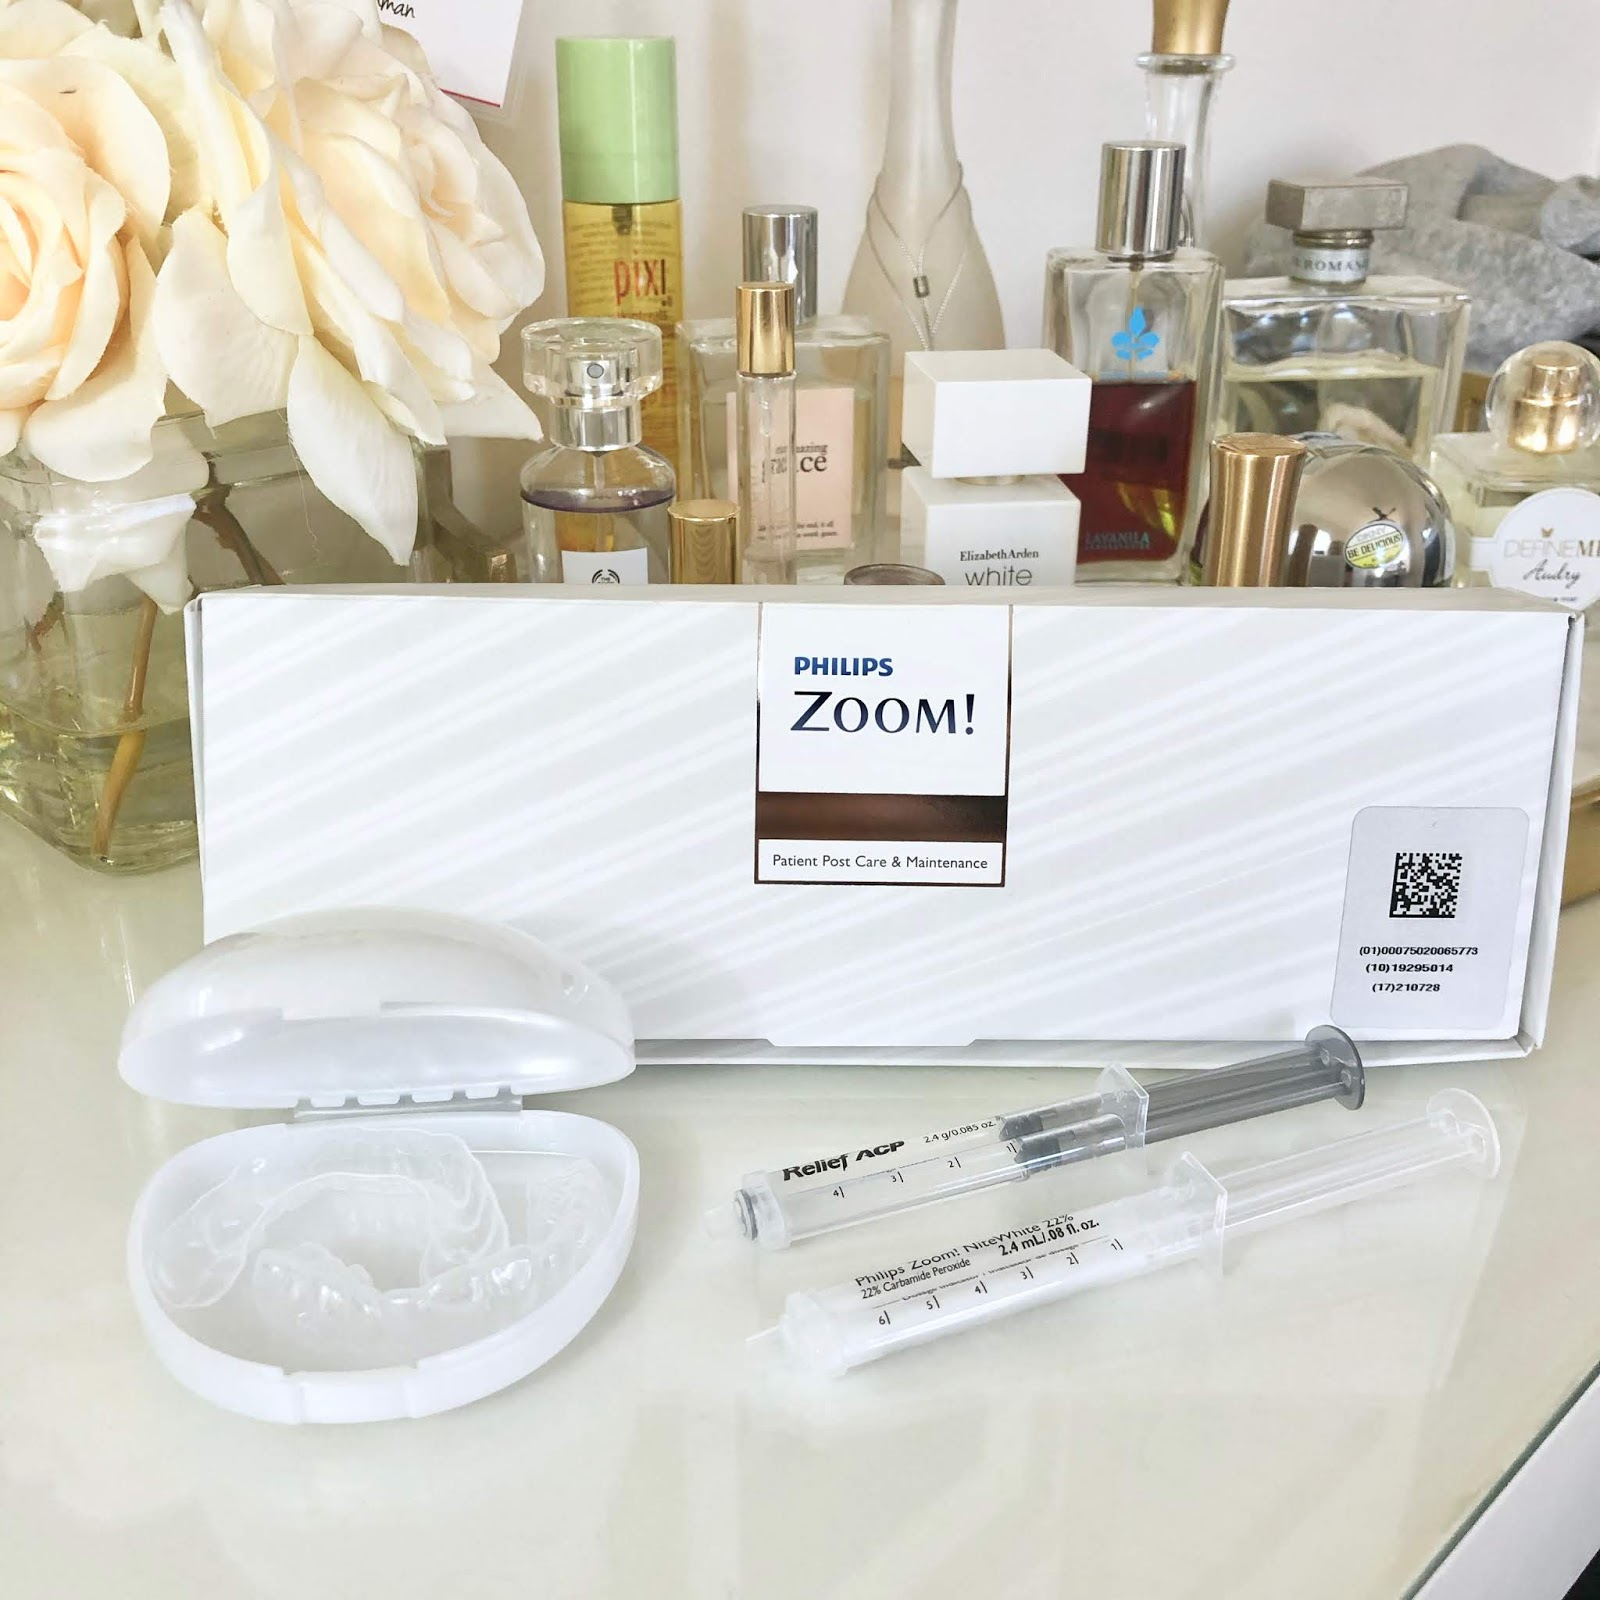 My Philips Zoom Teeth Whitening Experience With Before And After